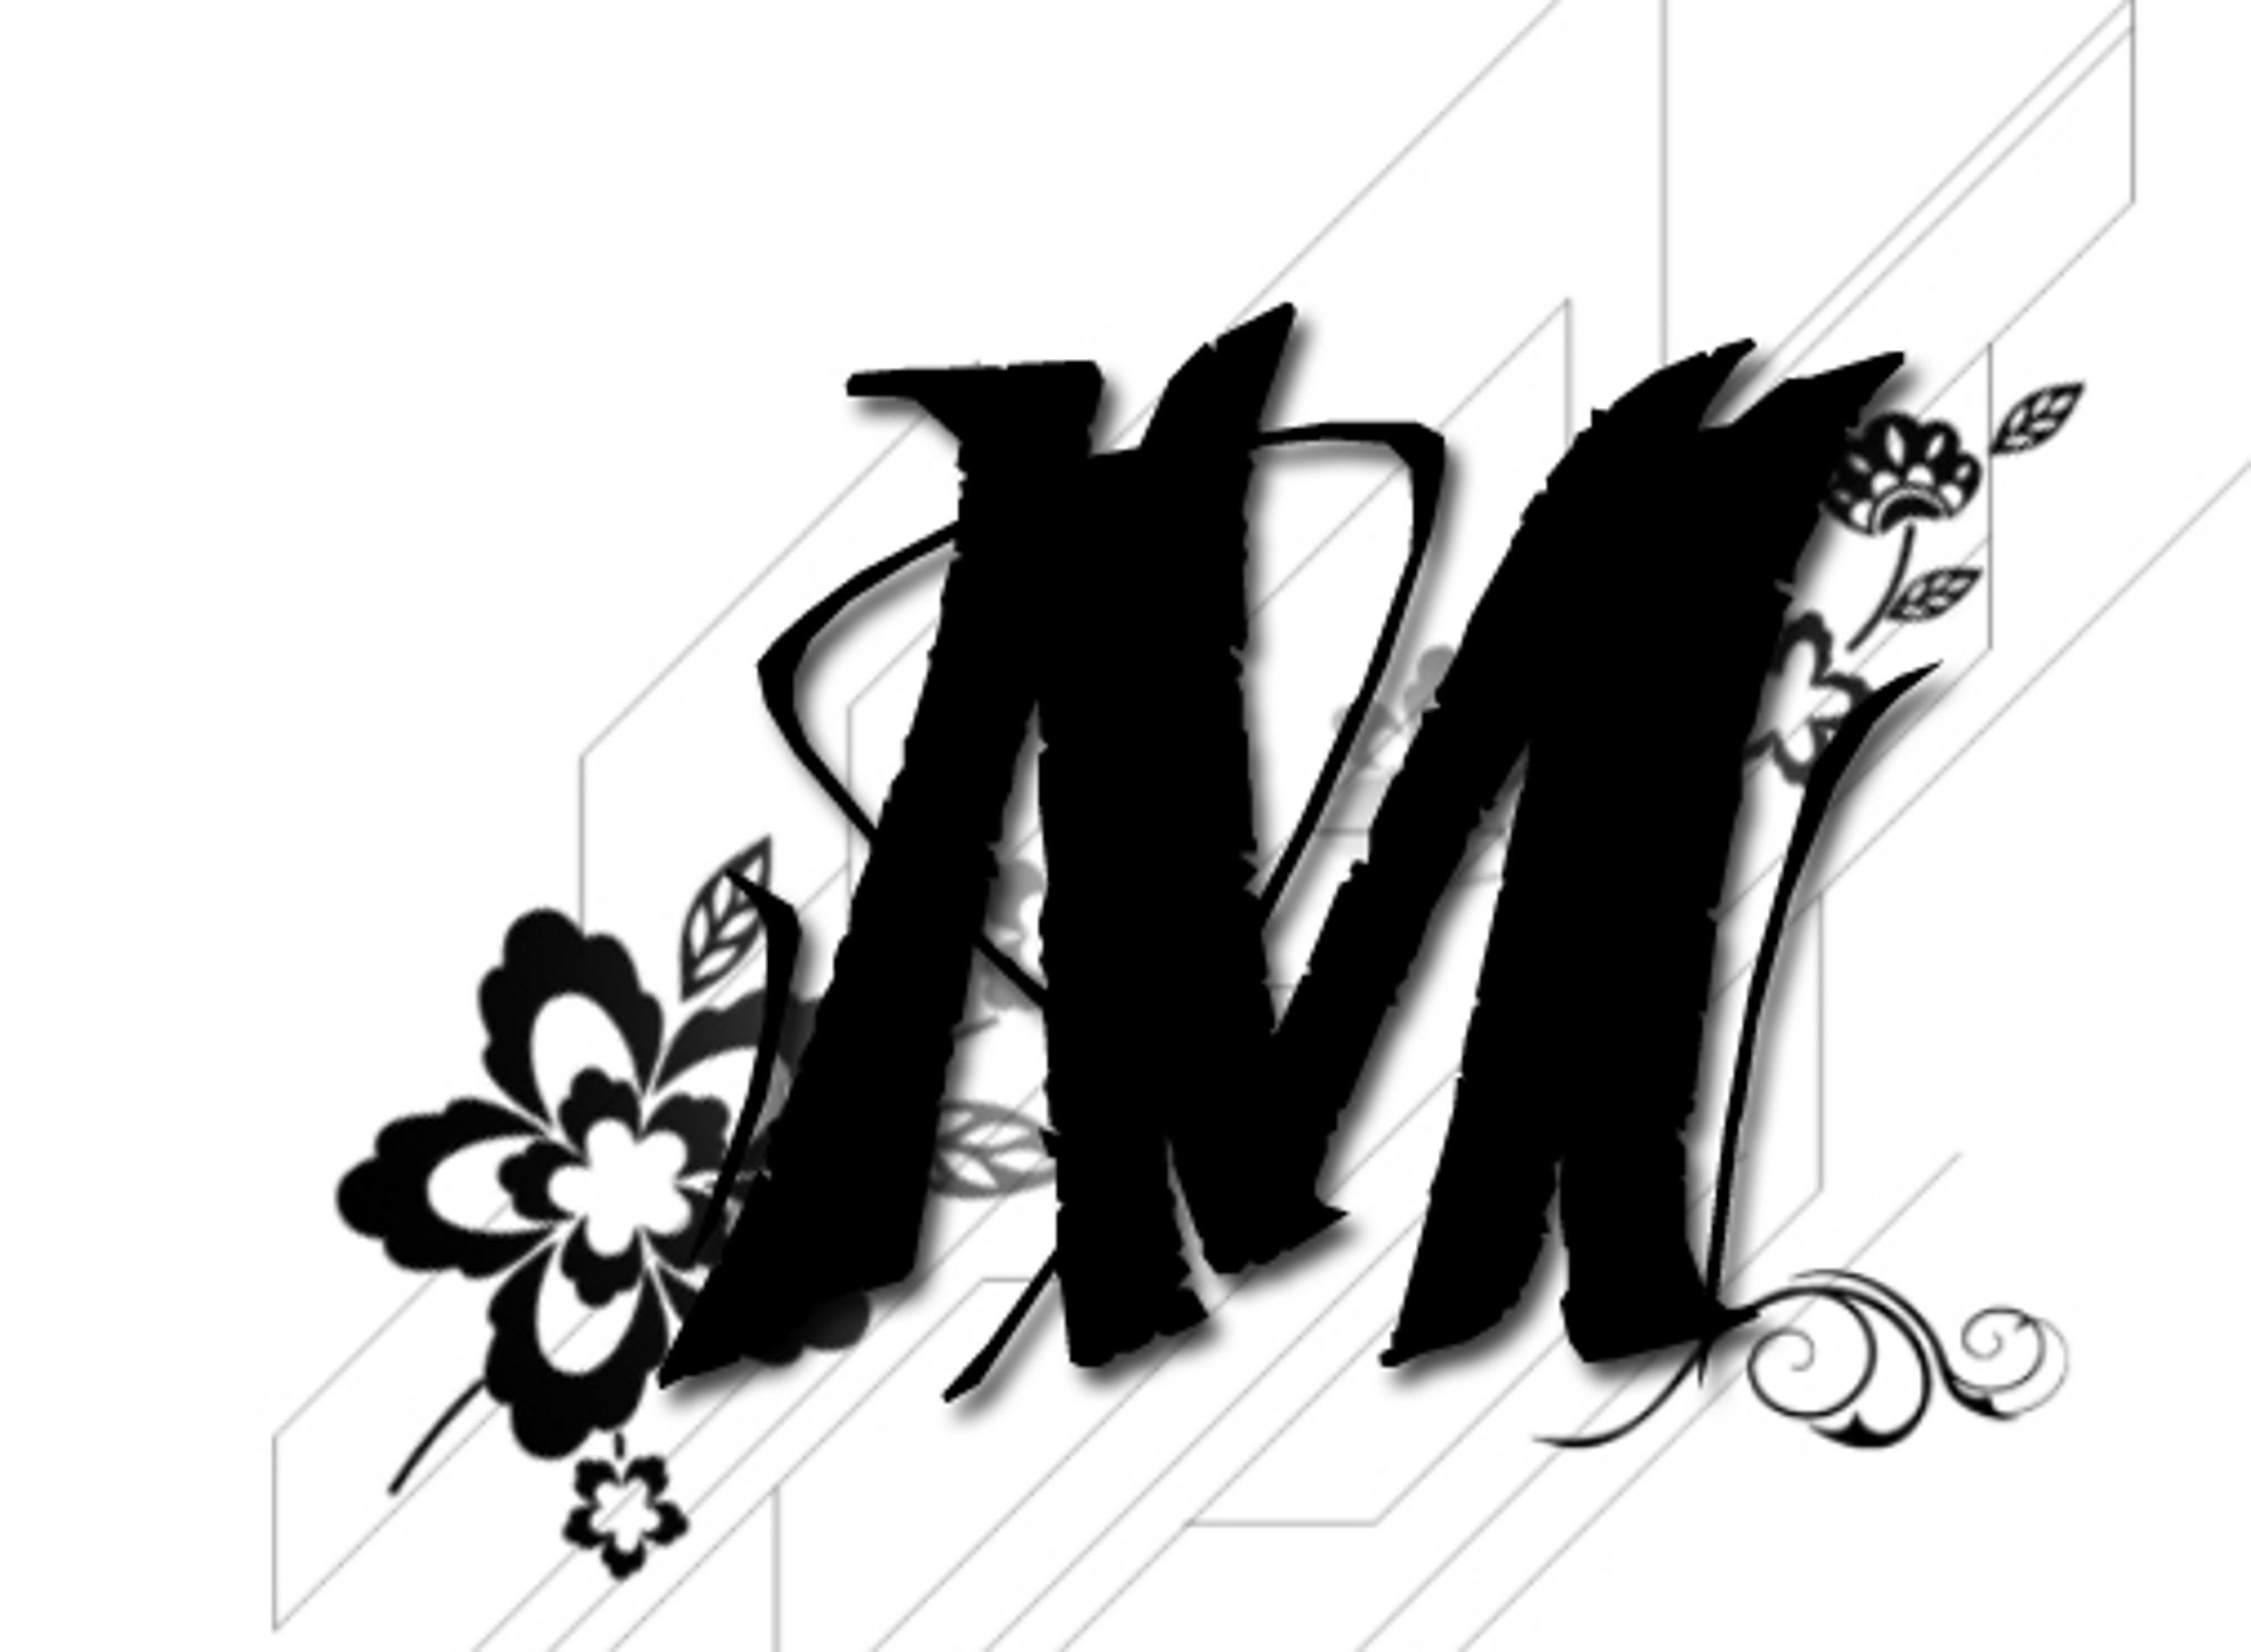 Res: 2616x1920, The Letter M images The letter M HD wallpaper and background